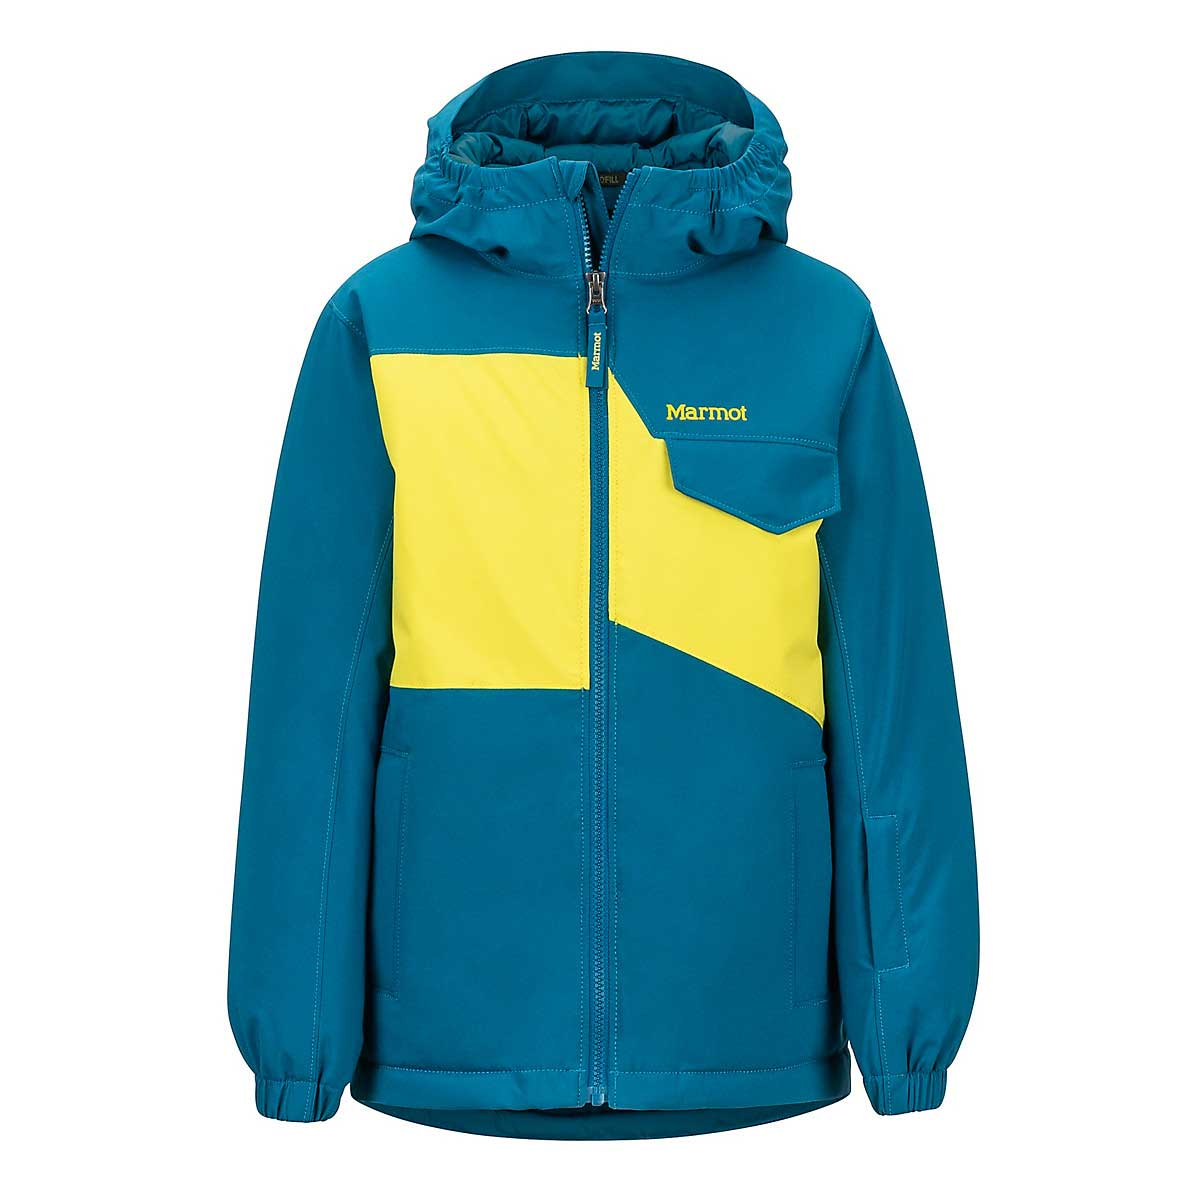 Marmot Boys' Rochester Jacket in Moroccan Blue and Citronelle